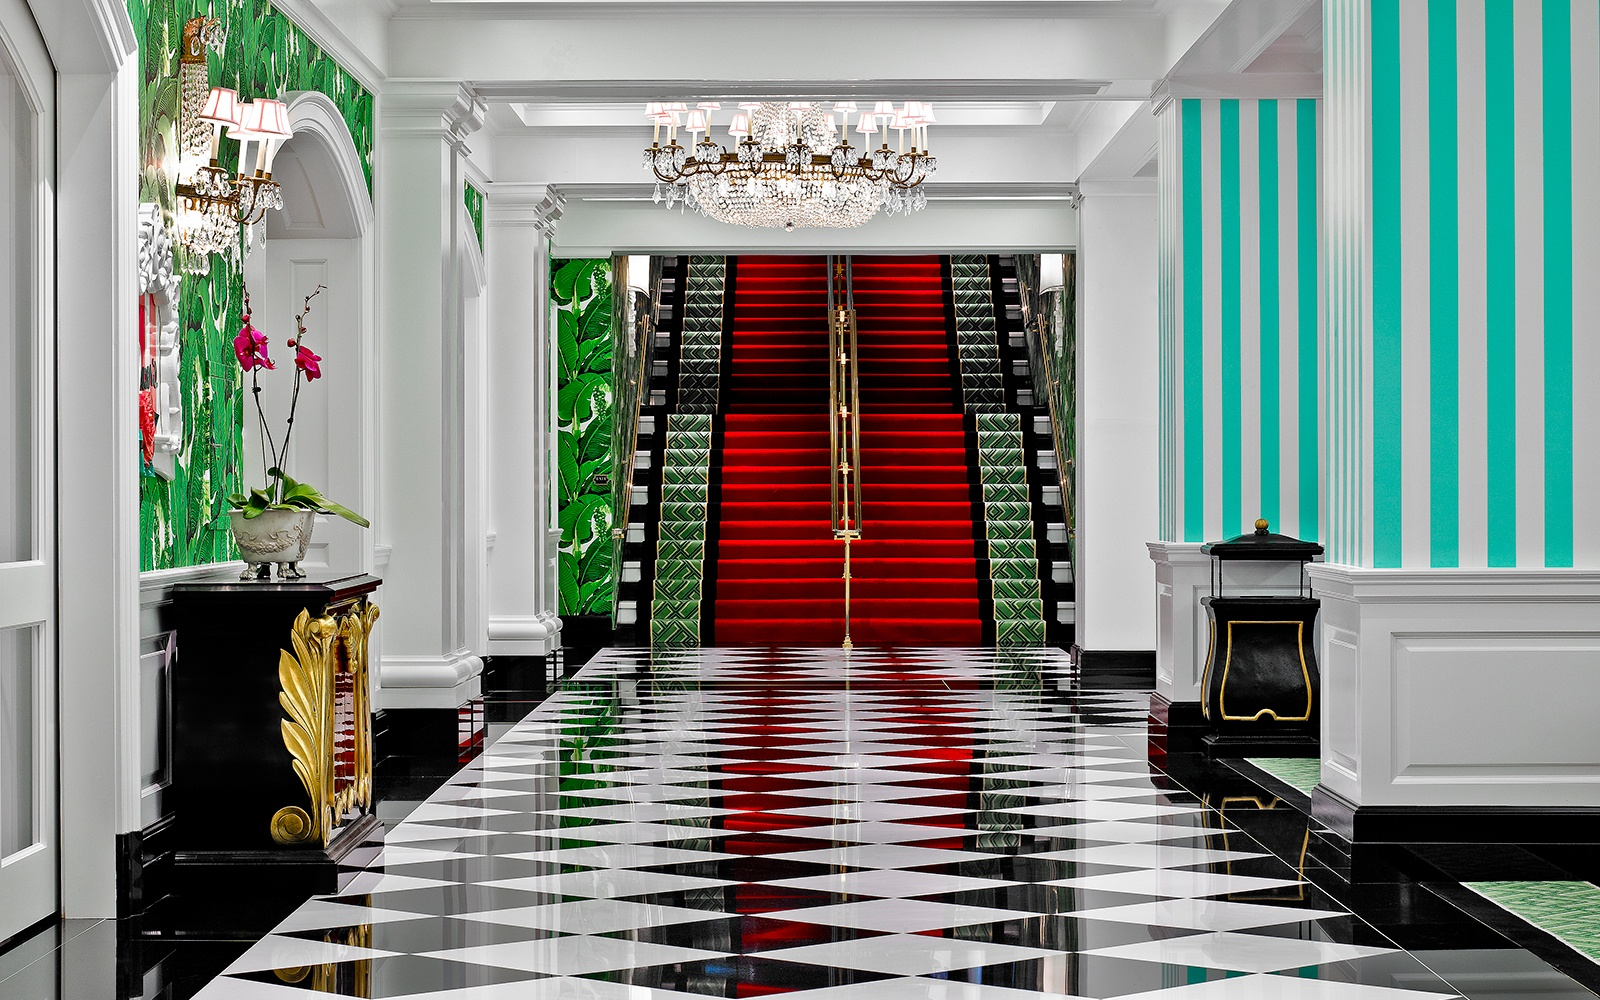 West Virginia: The Greenbrier